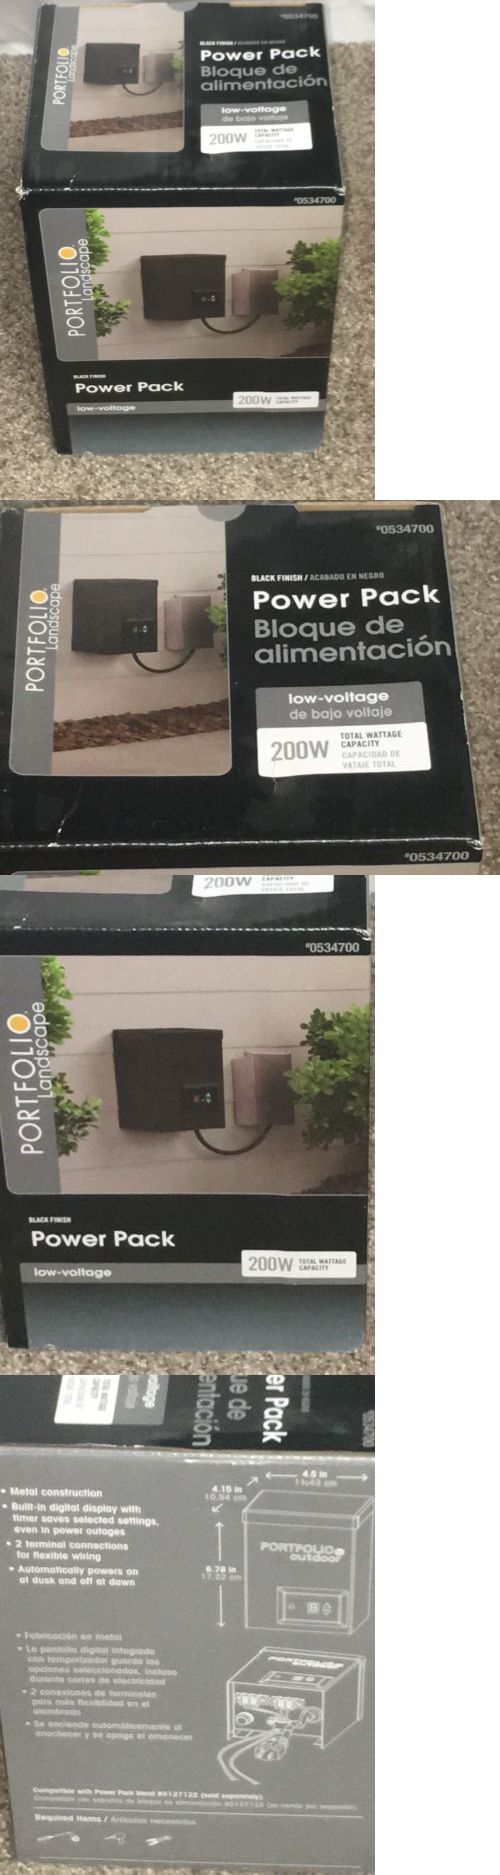 Landscape and Walkway Lights 94940: Portfolio Outdoor Landscape Low Voltage Lighting Light Power Pack 200W 12V New -> BUY IT NOW ONLY: $52 on eBay!